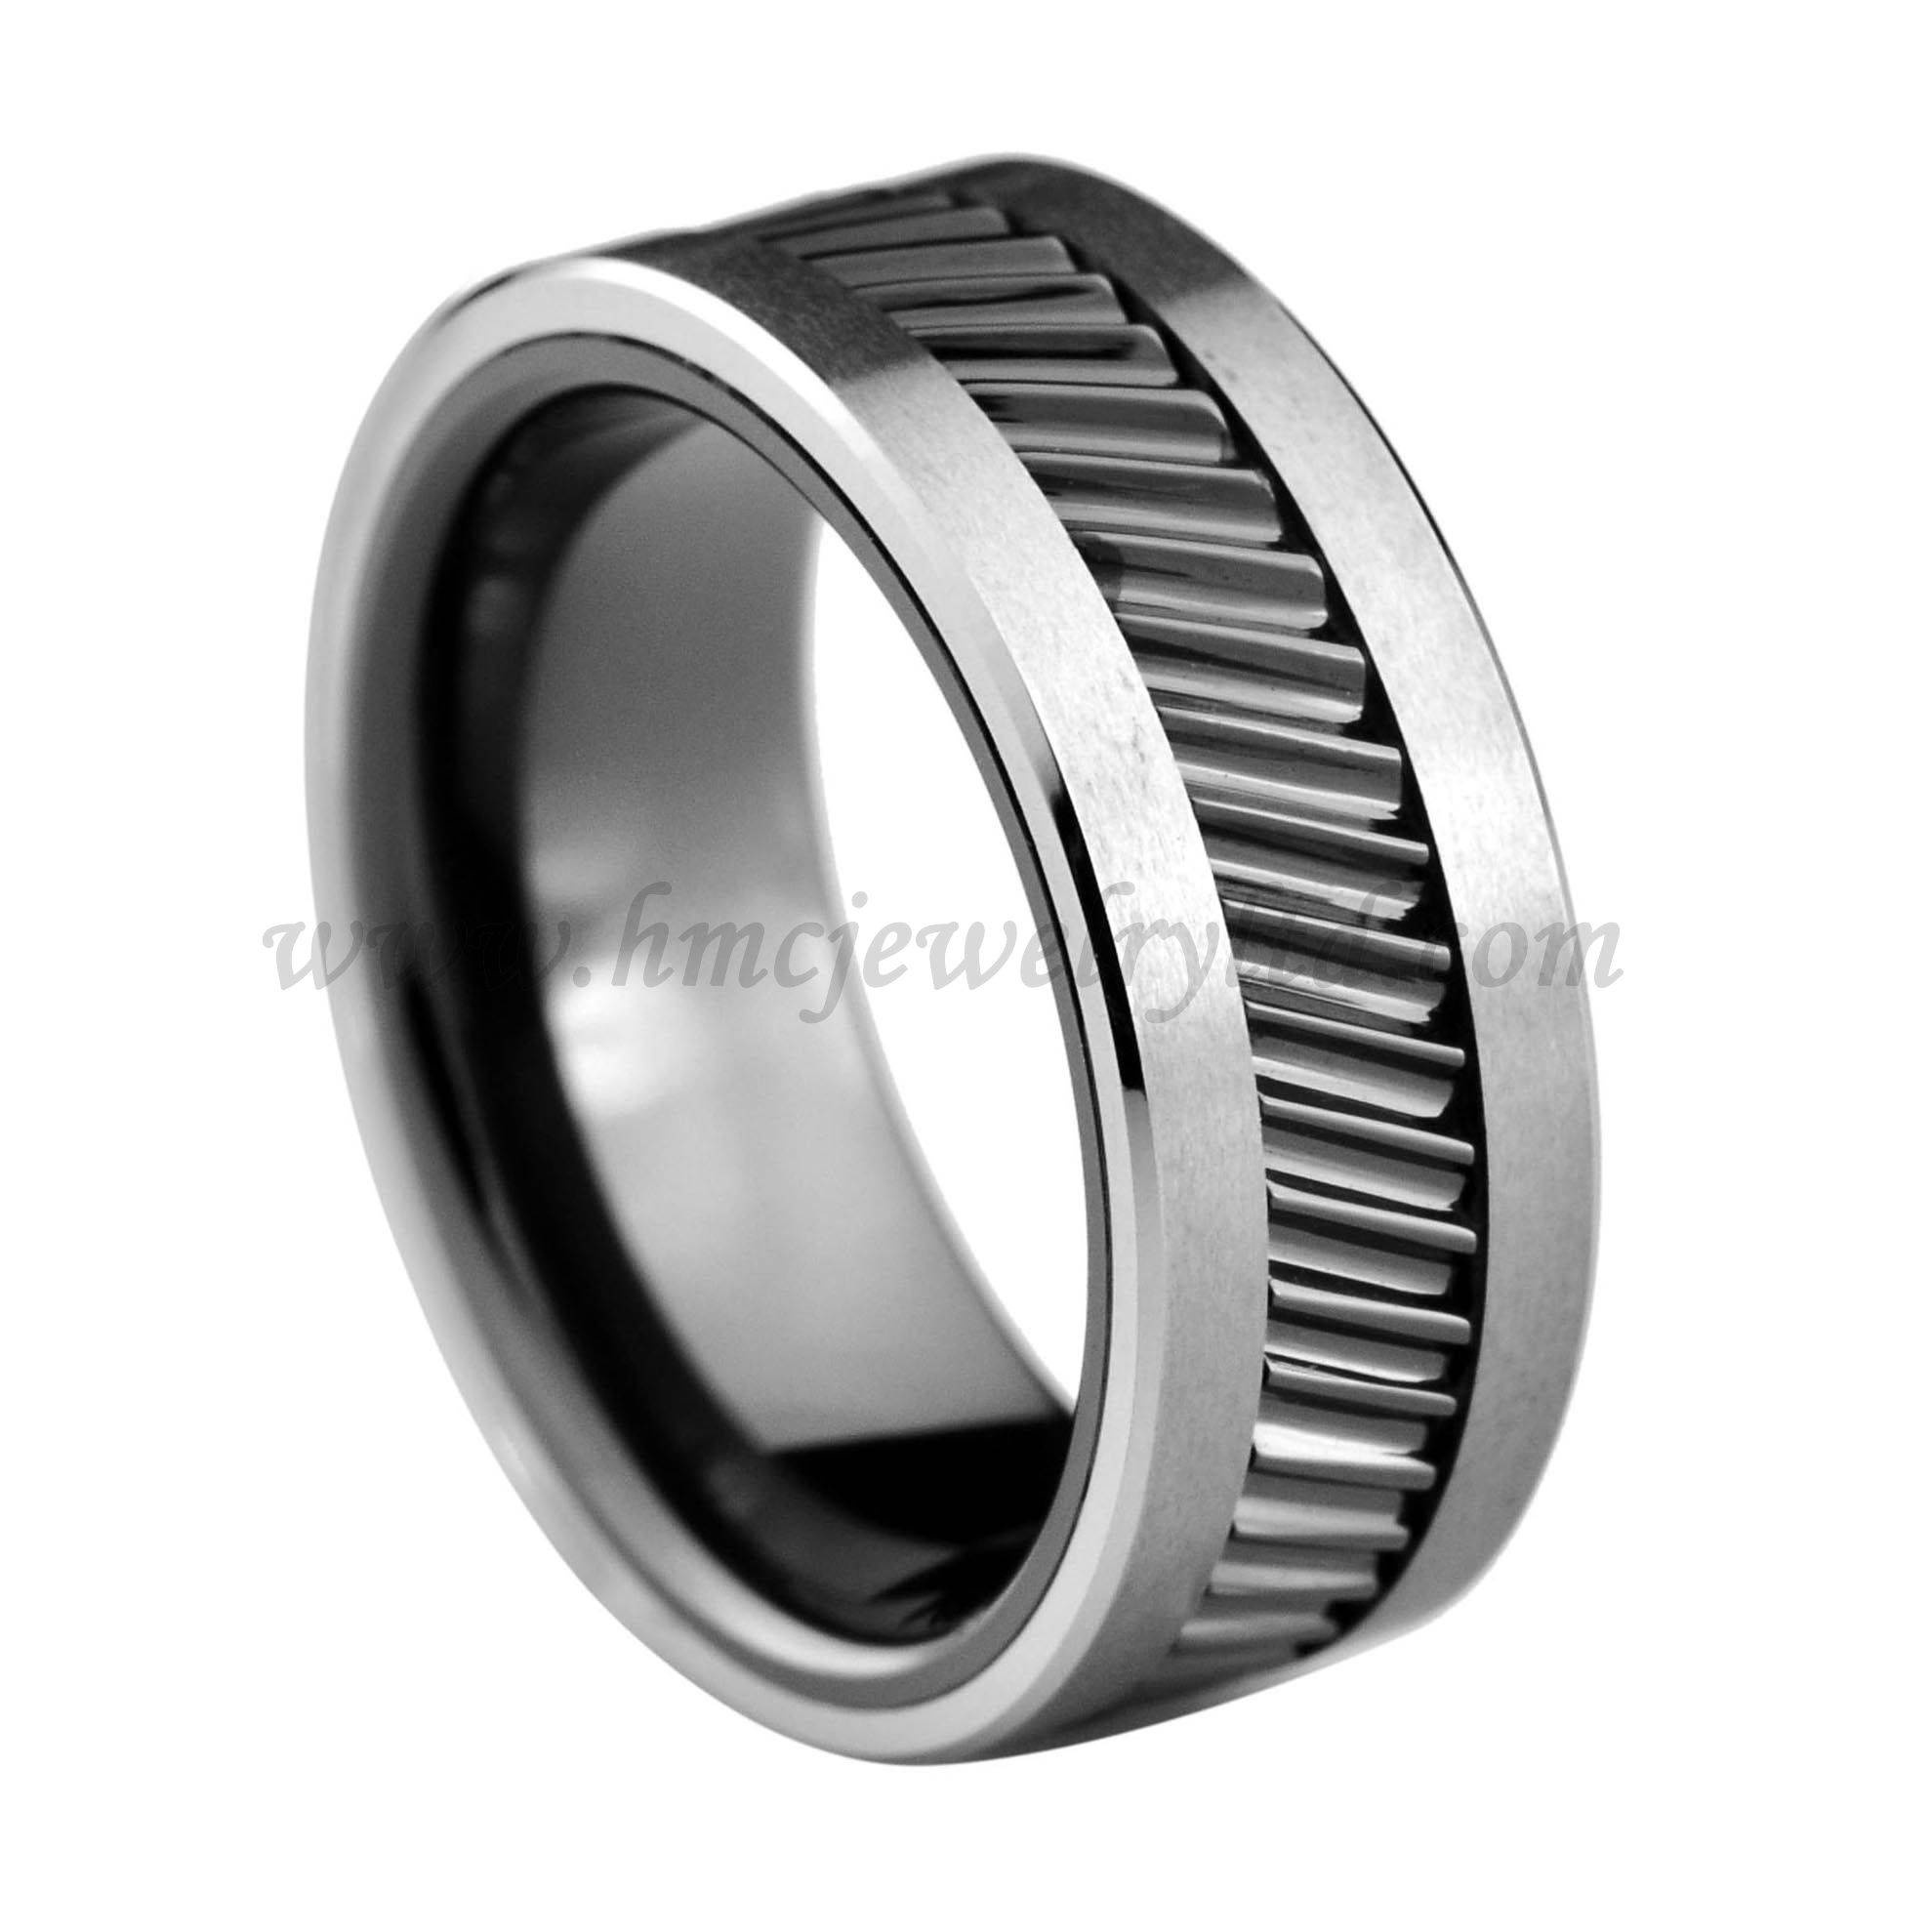 Gear teeth pattern black ceramic inlay tungsten carbide ring for men